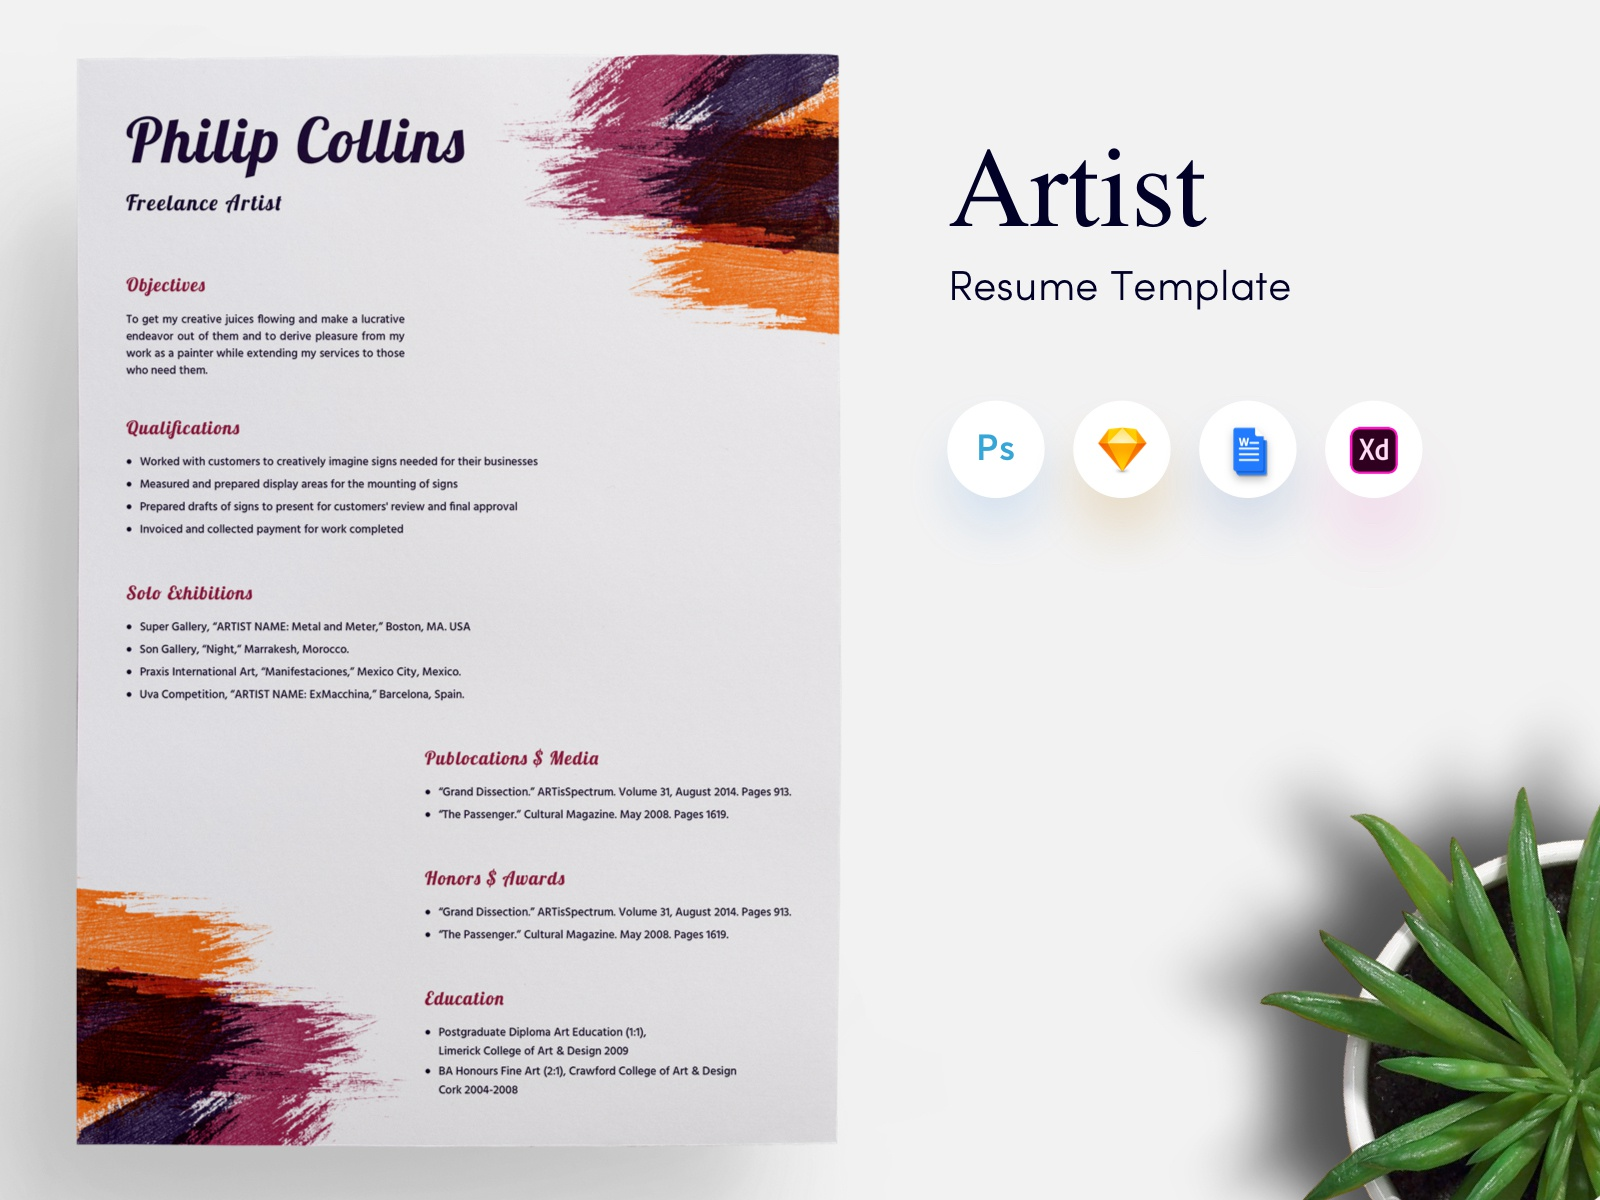 Freelance Artist CV/Resume Template by getresume.co - Dribbble